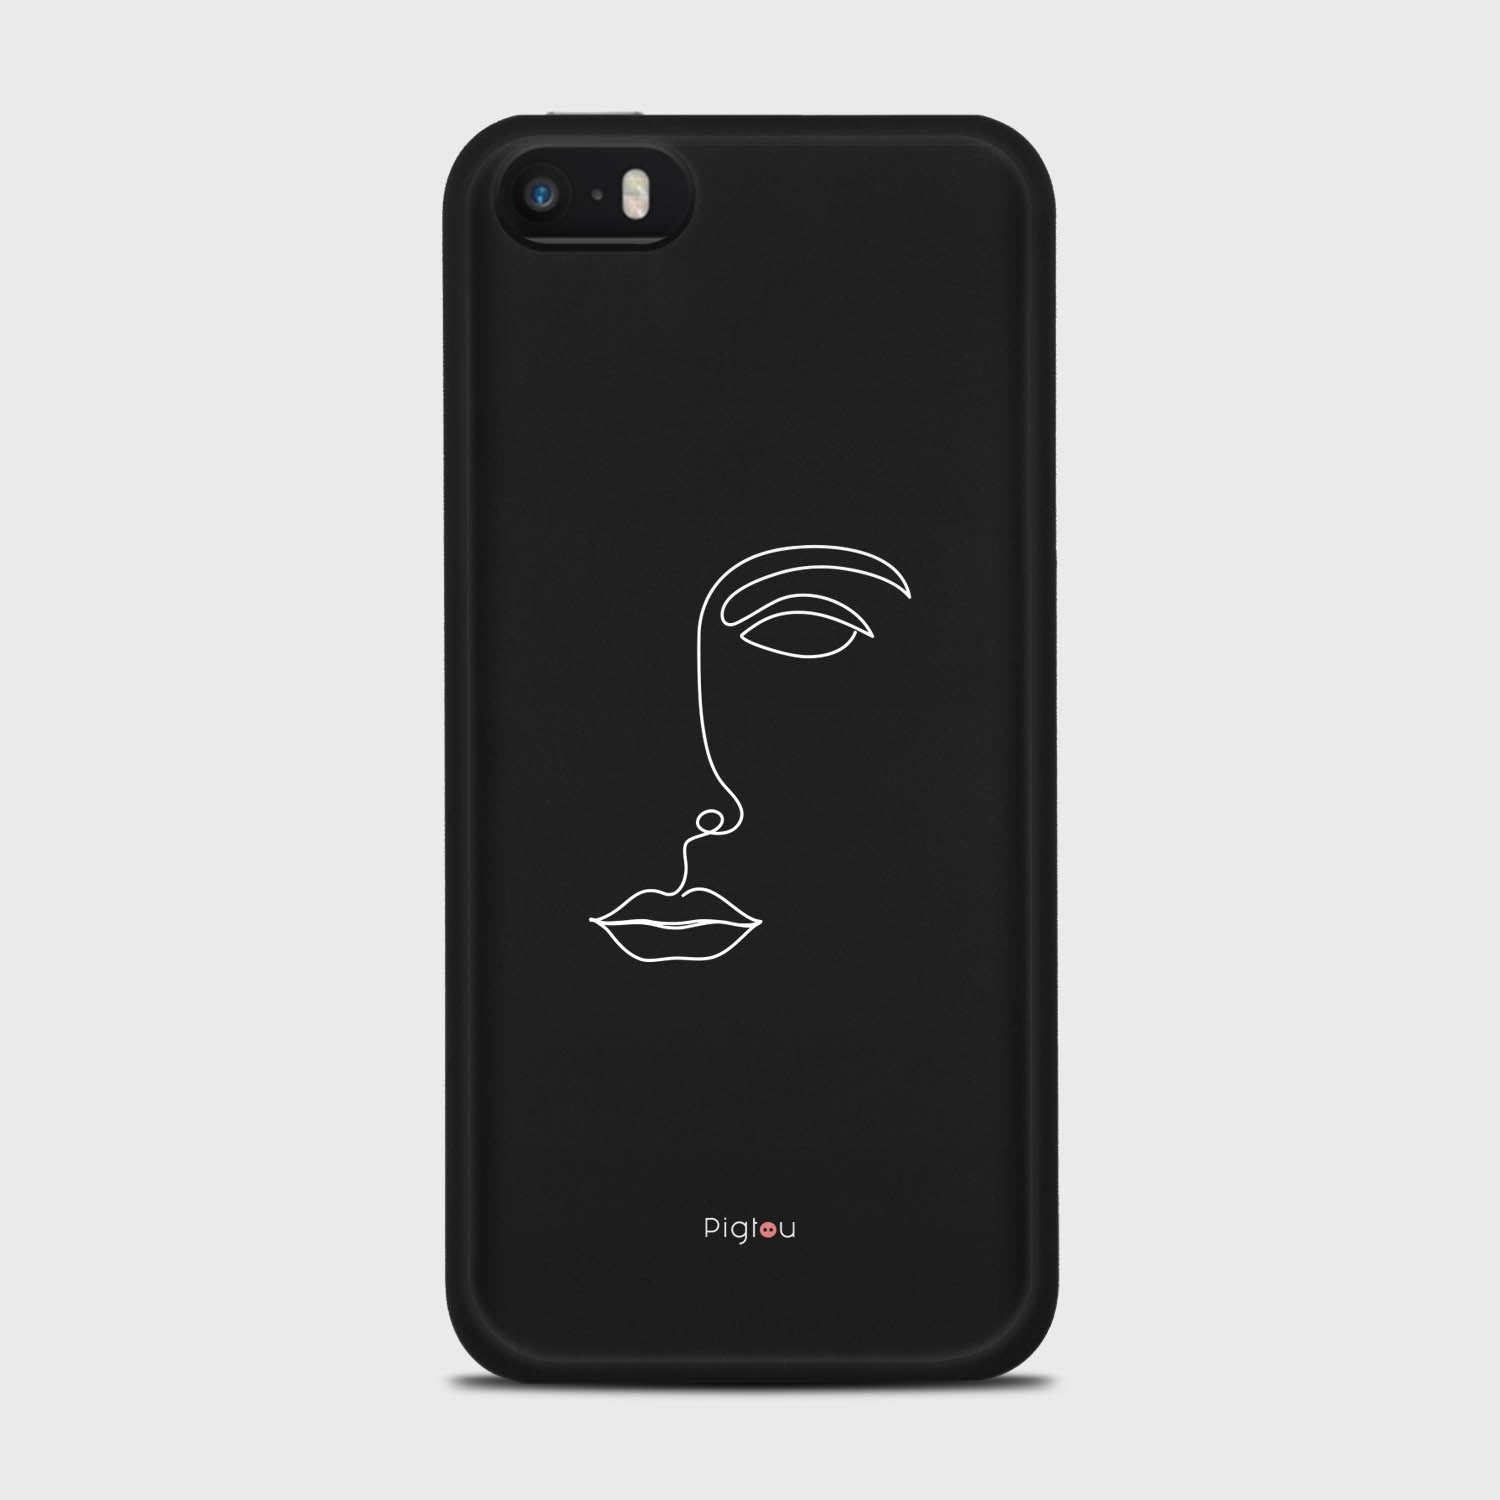 SILHOUETTE FACE iPhone 5 cases | Pigtou